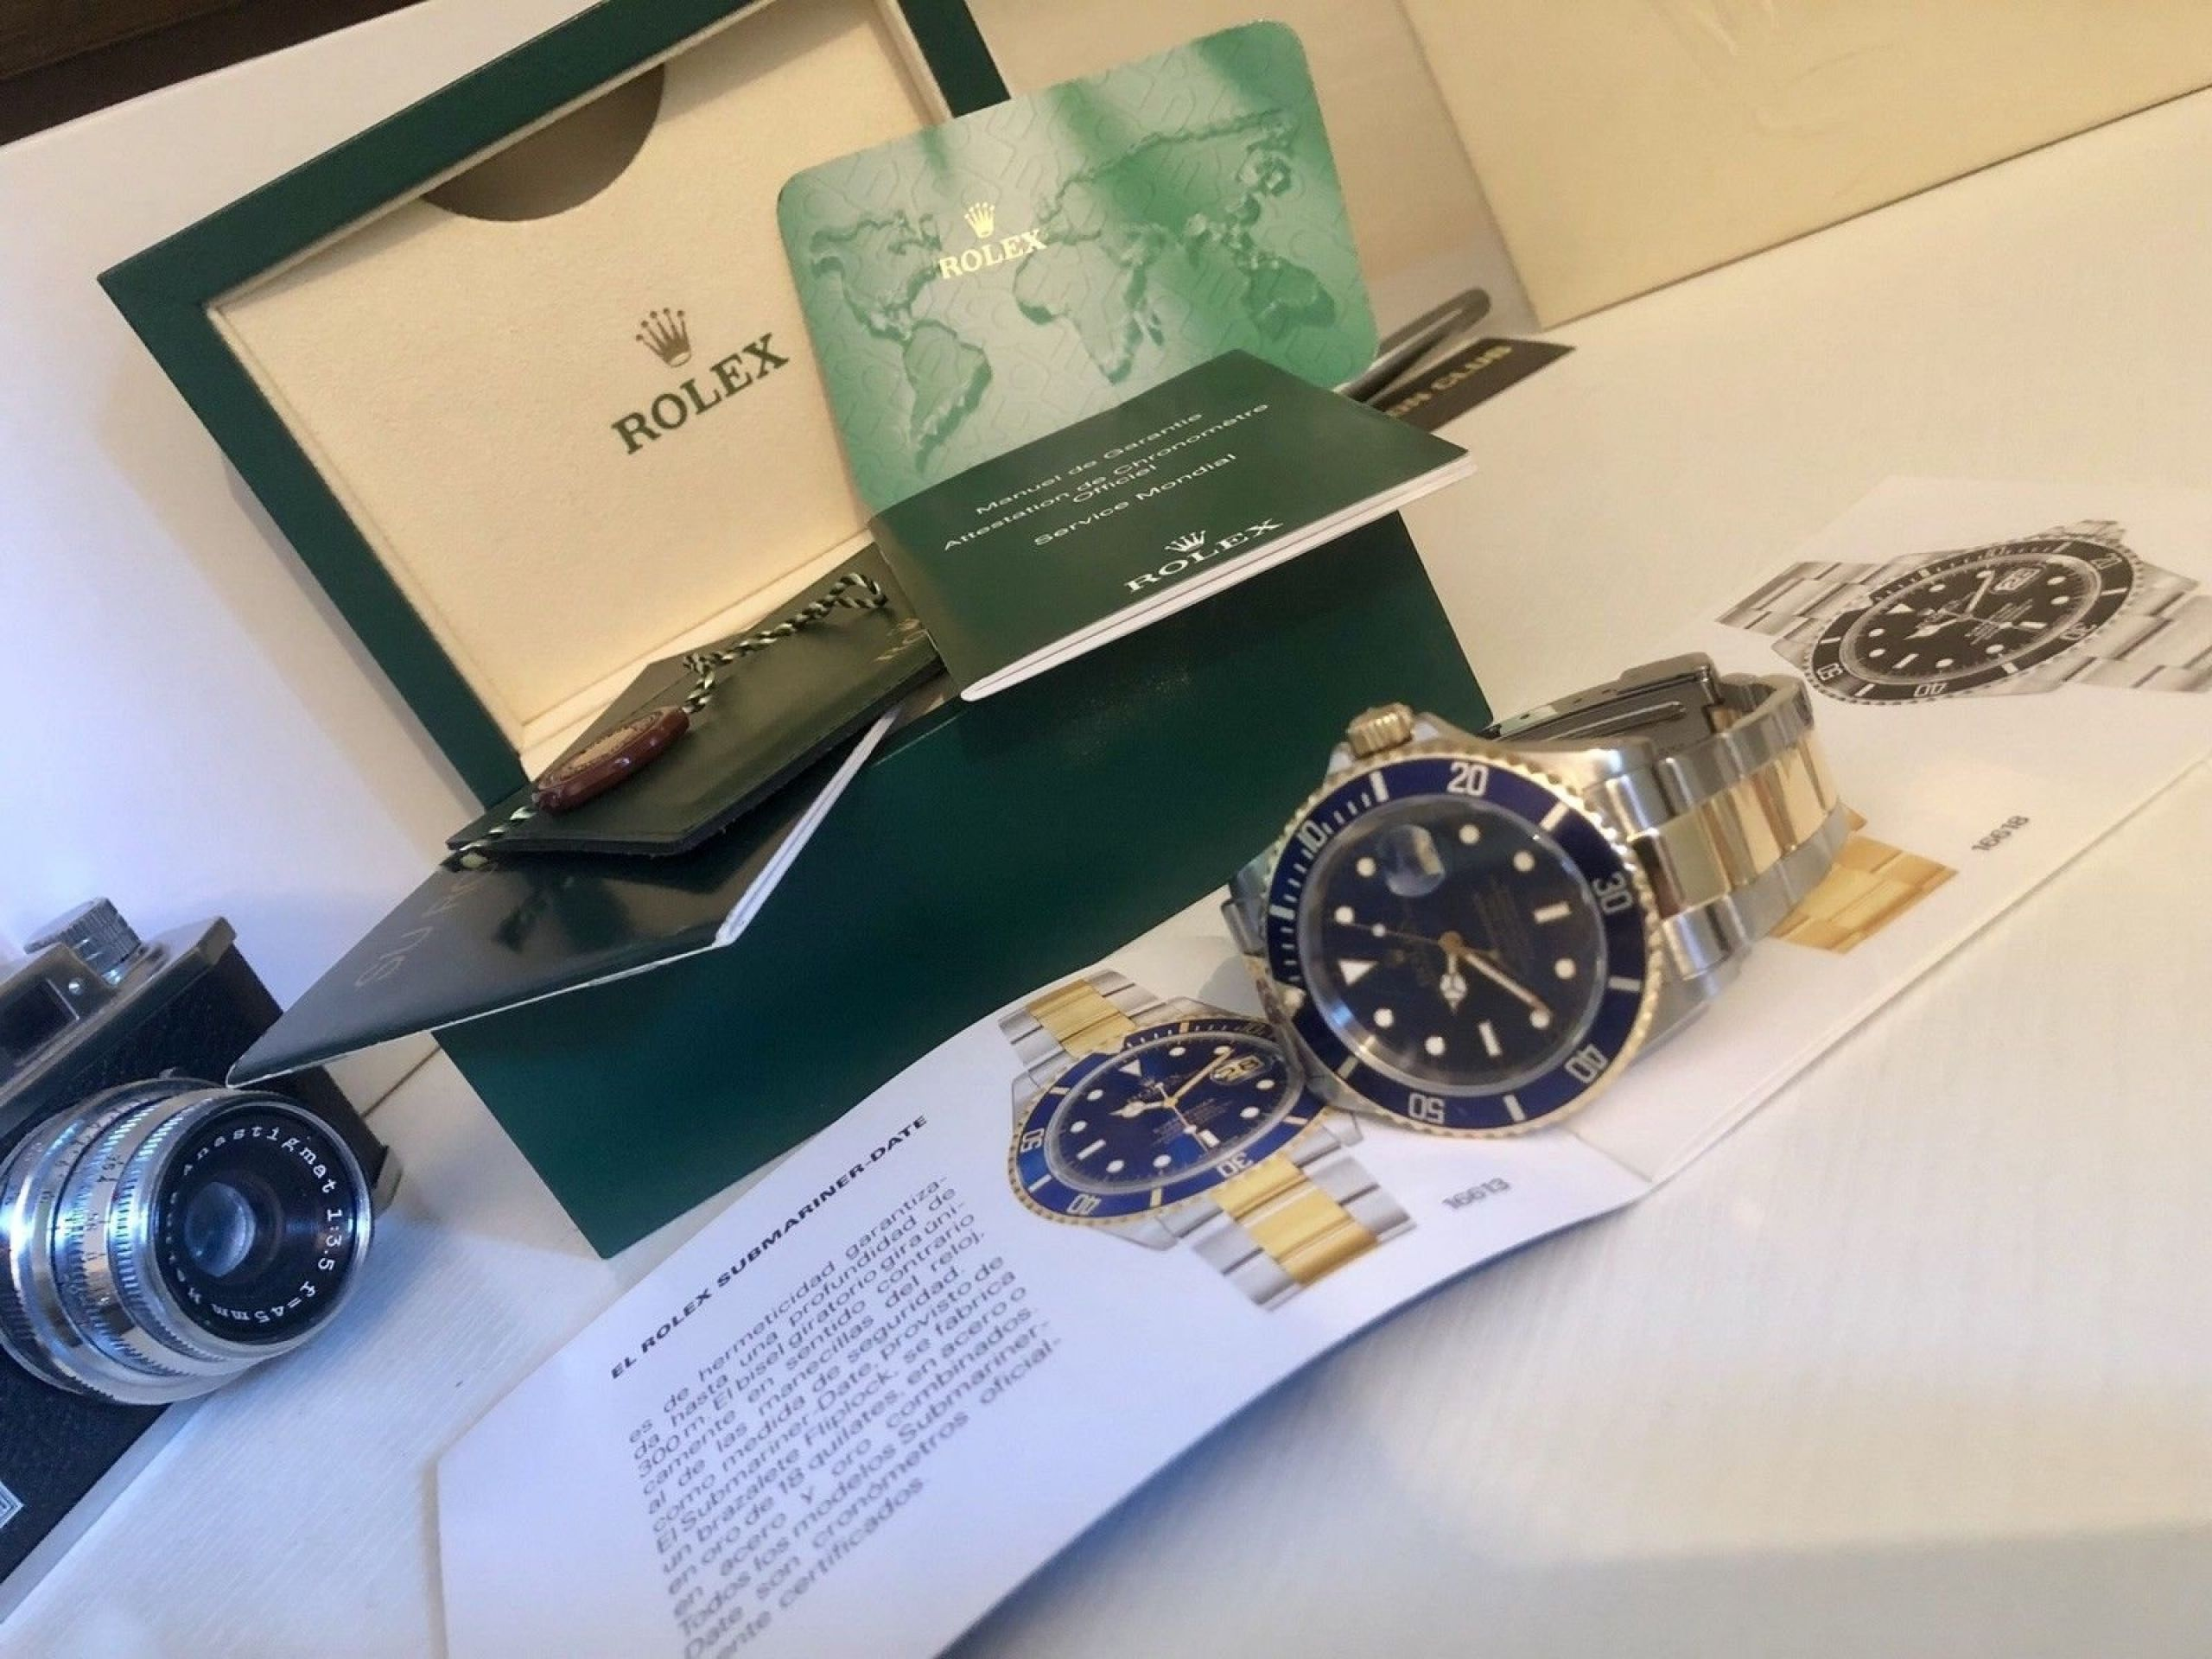 ROLEX SUBMARINER 16613 BLUE DIAL BI METAL 2004/05 CASE 2160 CALIBRE MOVEMENT